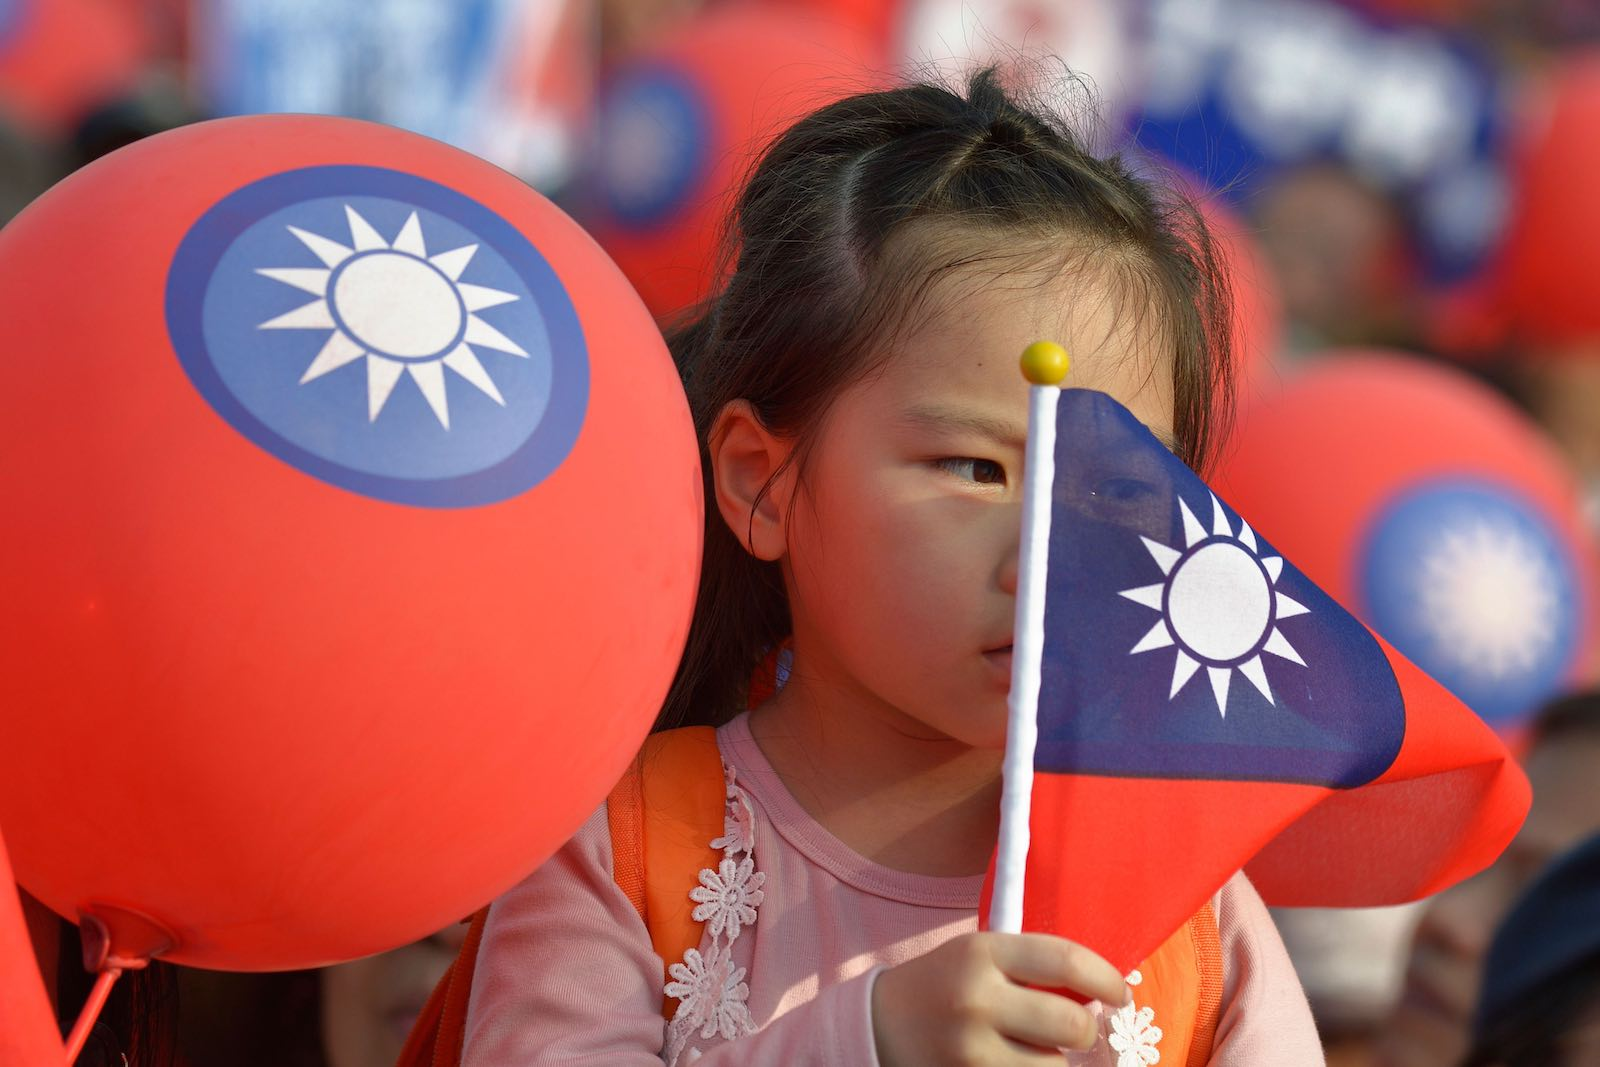 New forces have mixed with historic tensions in Taiwan politics (Photo: Chris Stowers/Flickr)